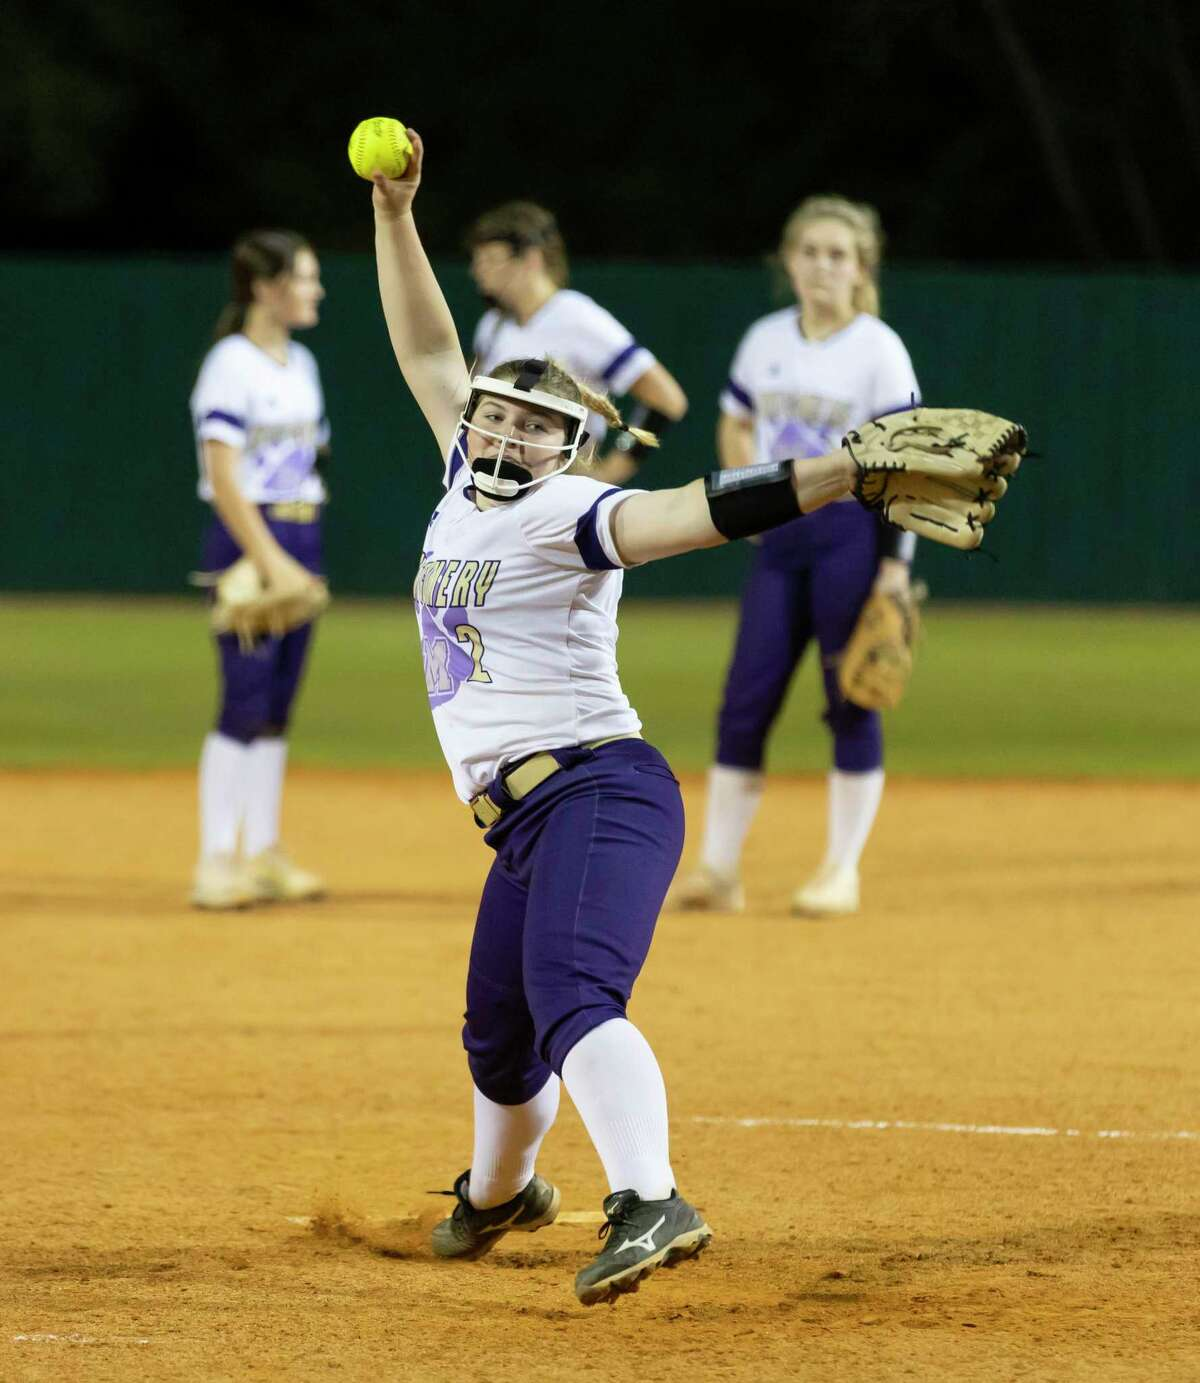 Montgomery's Reese Hall warms up in a game against Porter last year.